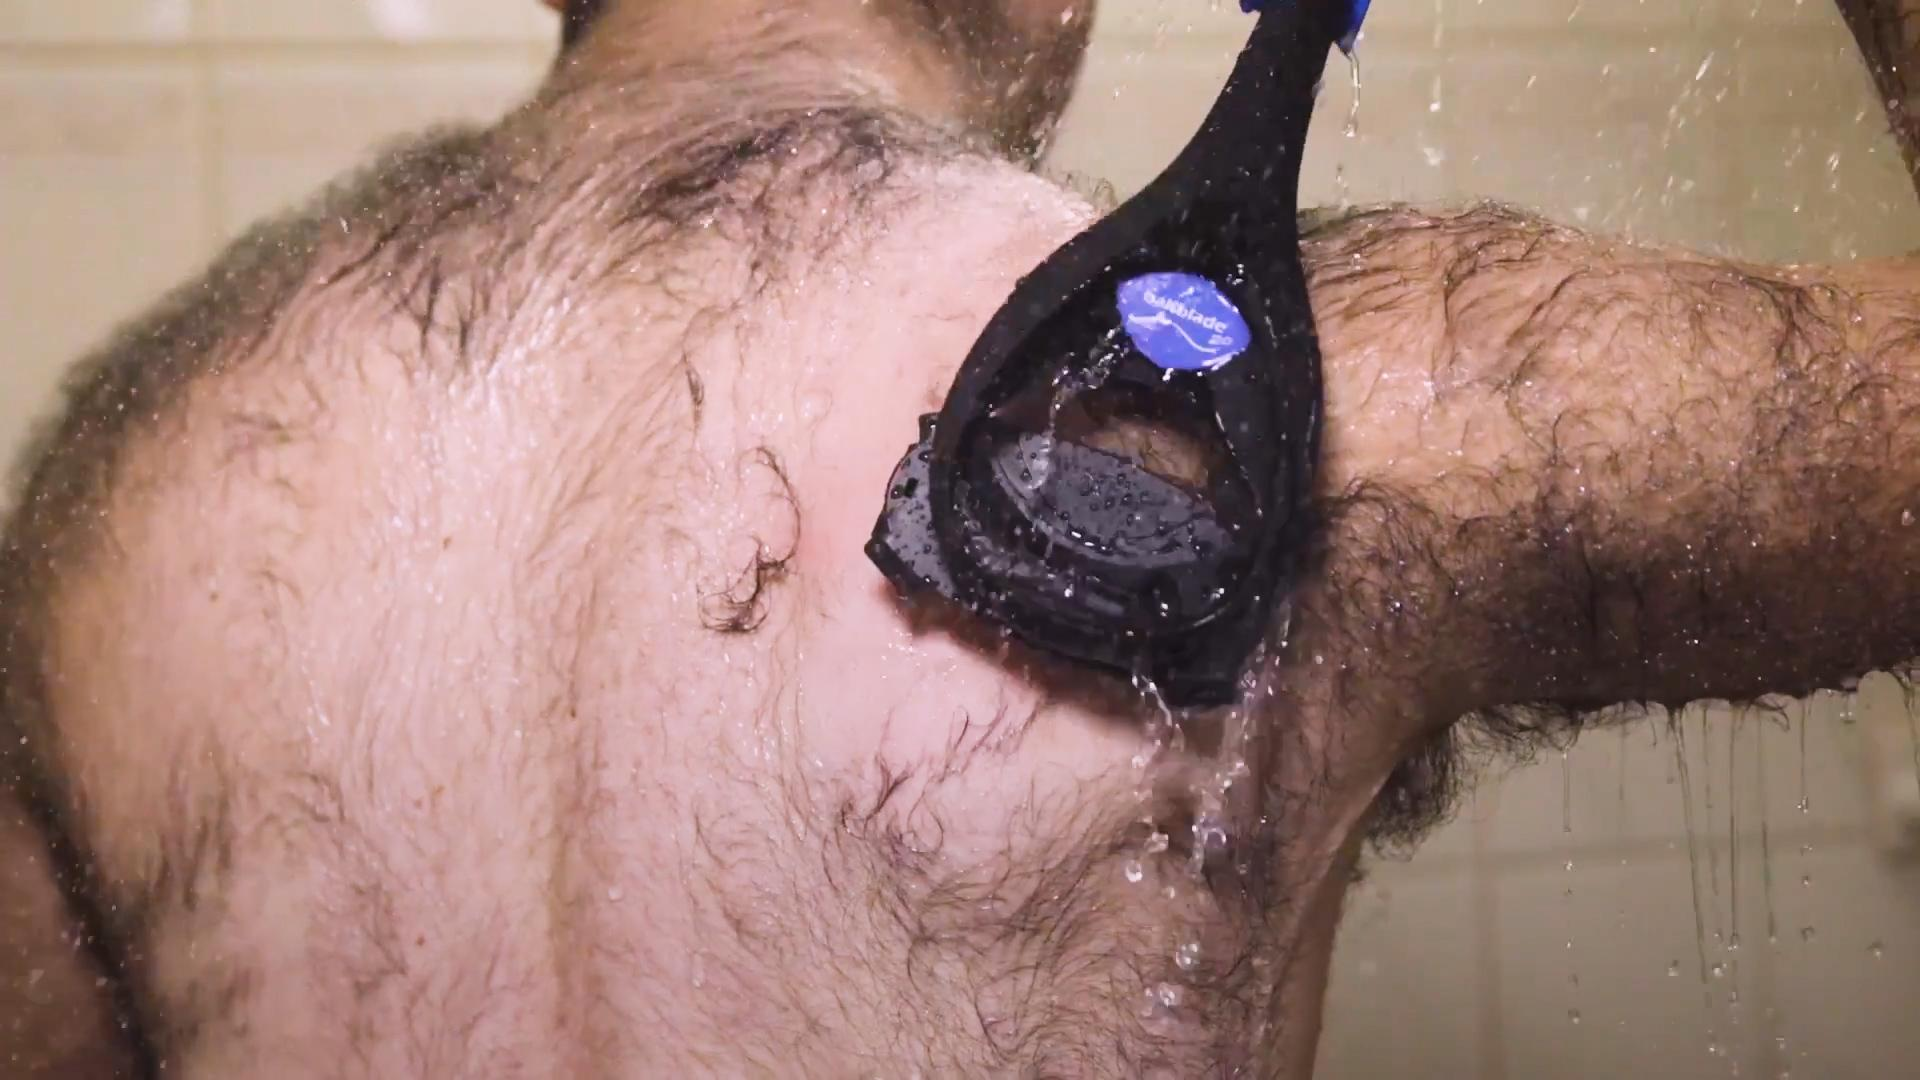 Hairy Backs Have Met Their Match With This Giant Razor